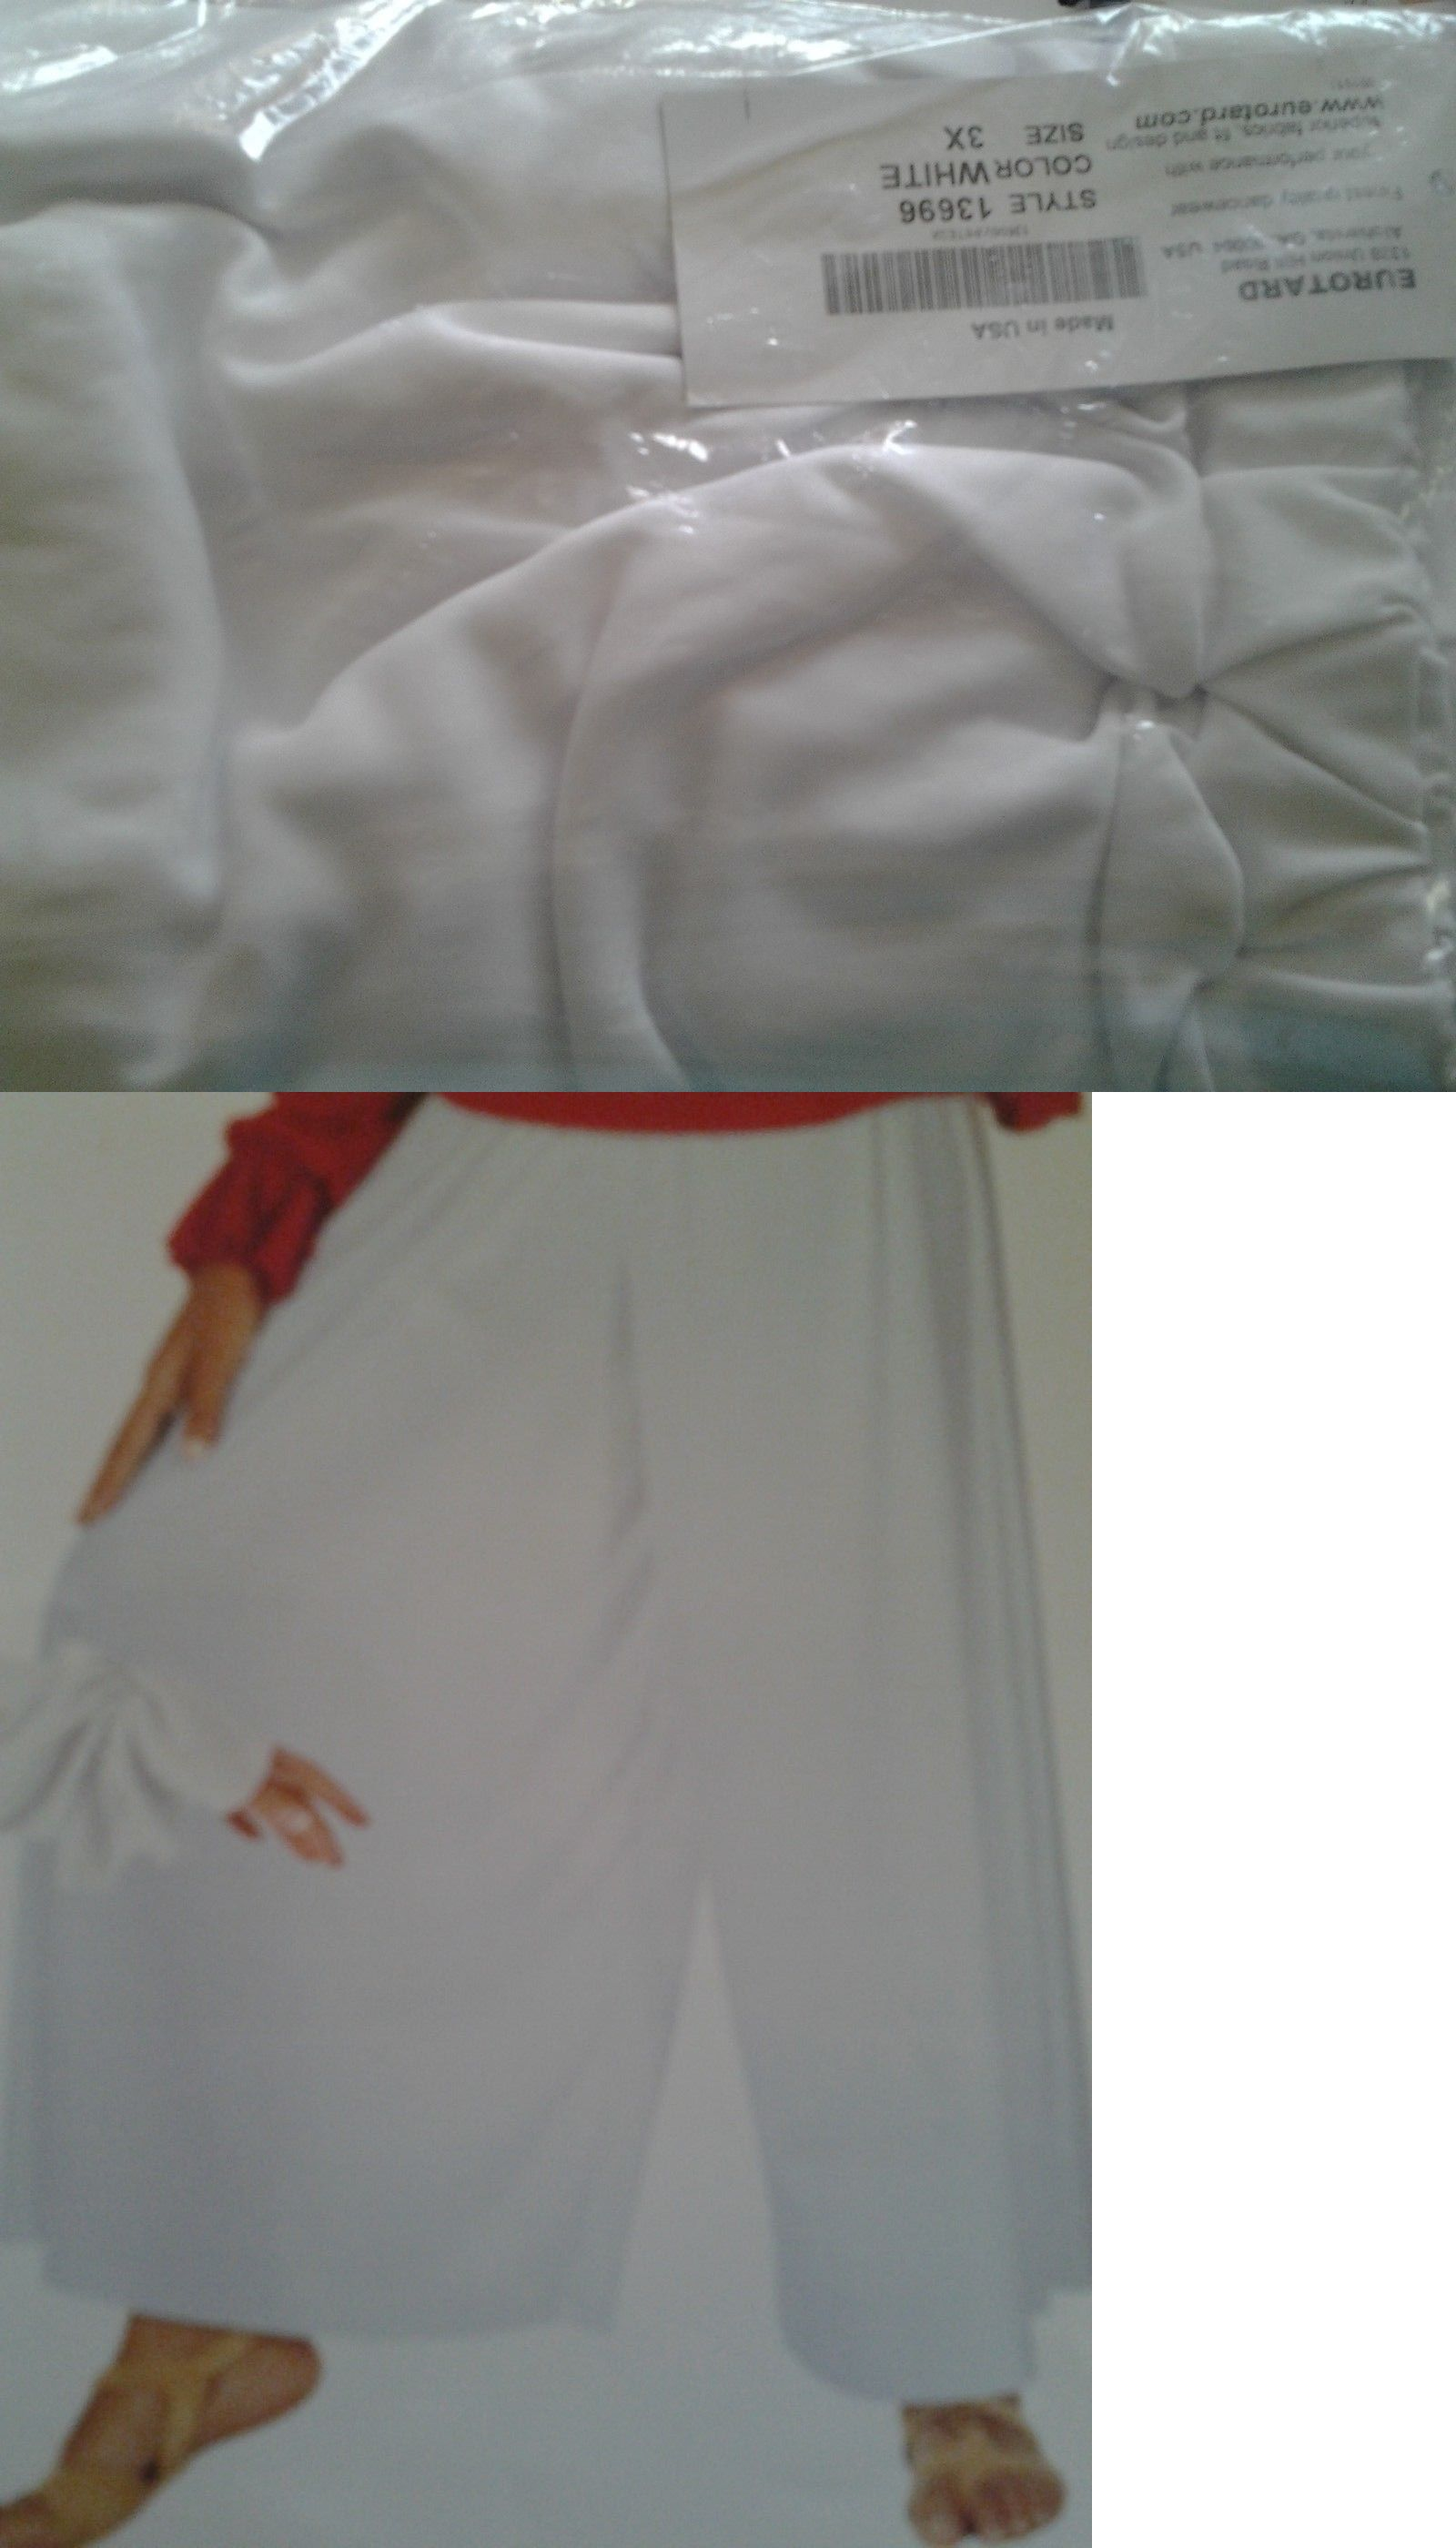 b16dc6eca4 Pants and Shorts 163140  Eurotard 13696 Size 3X White Palazzo Pants -  BUY  IT NOW ONLY   21.5 on  eBay  pants  shorts  eurotard  white  palazzo